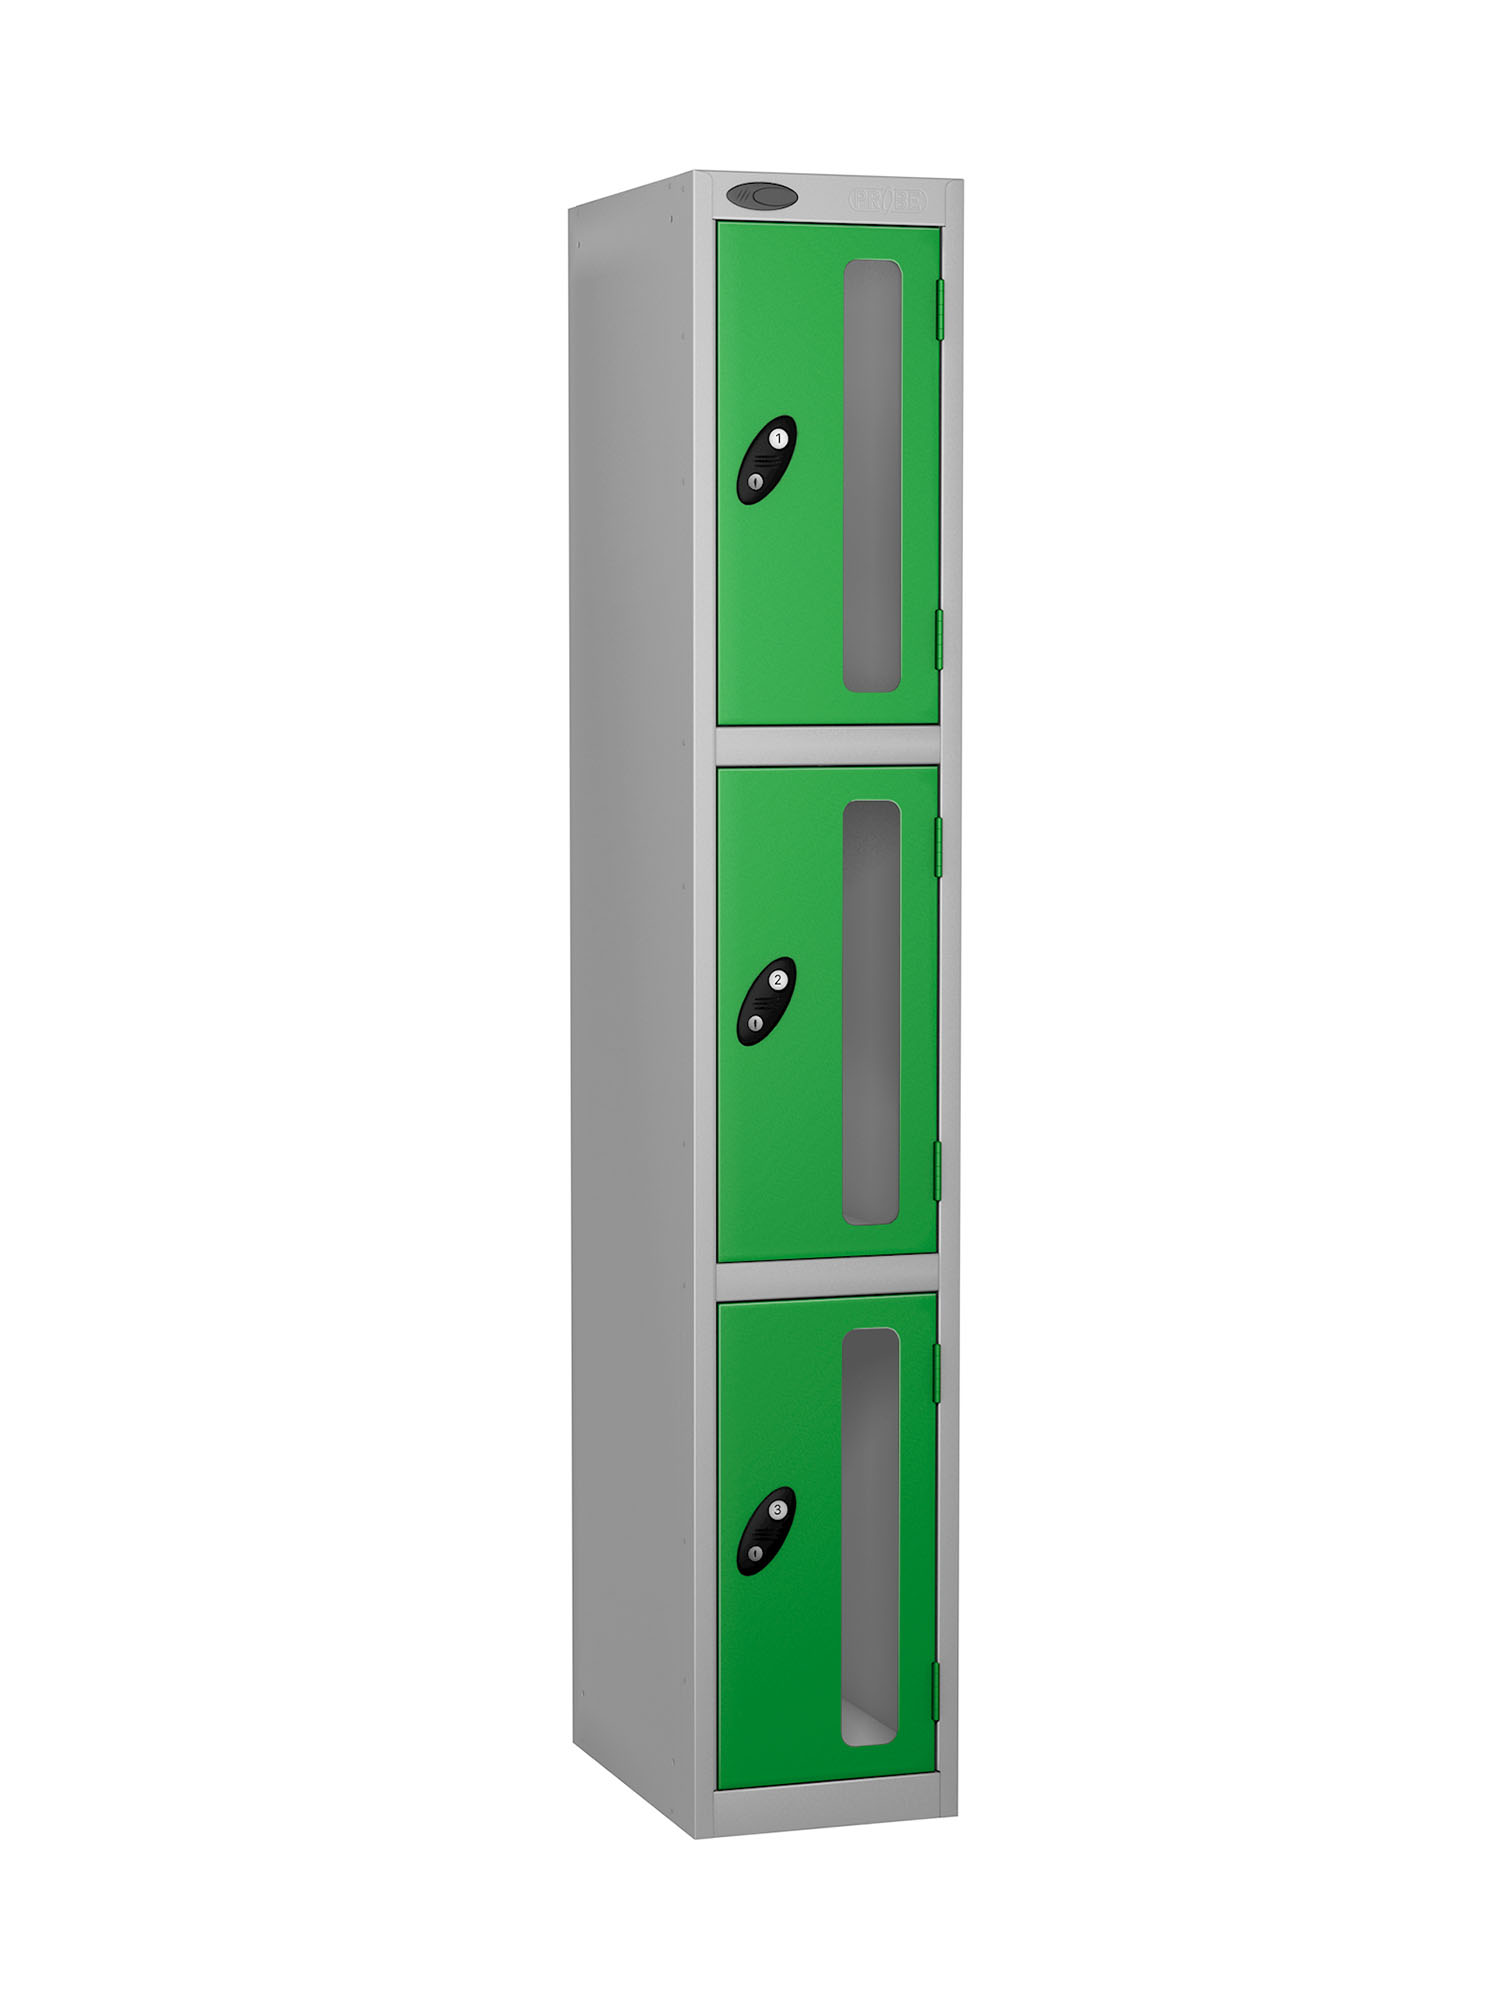 Probe 3 doors vision panel anti-stock theft locker green